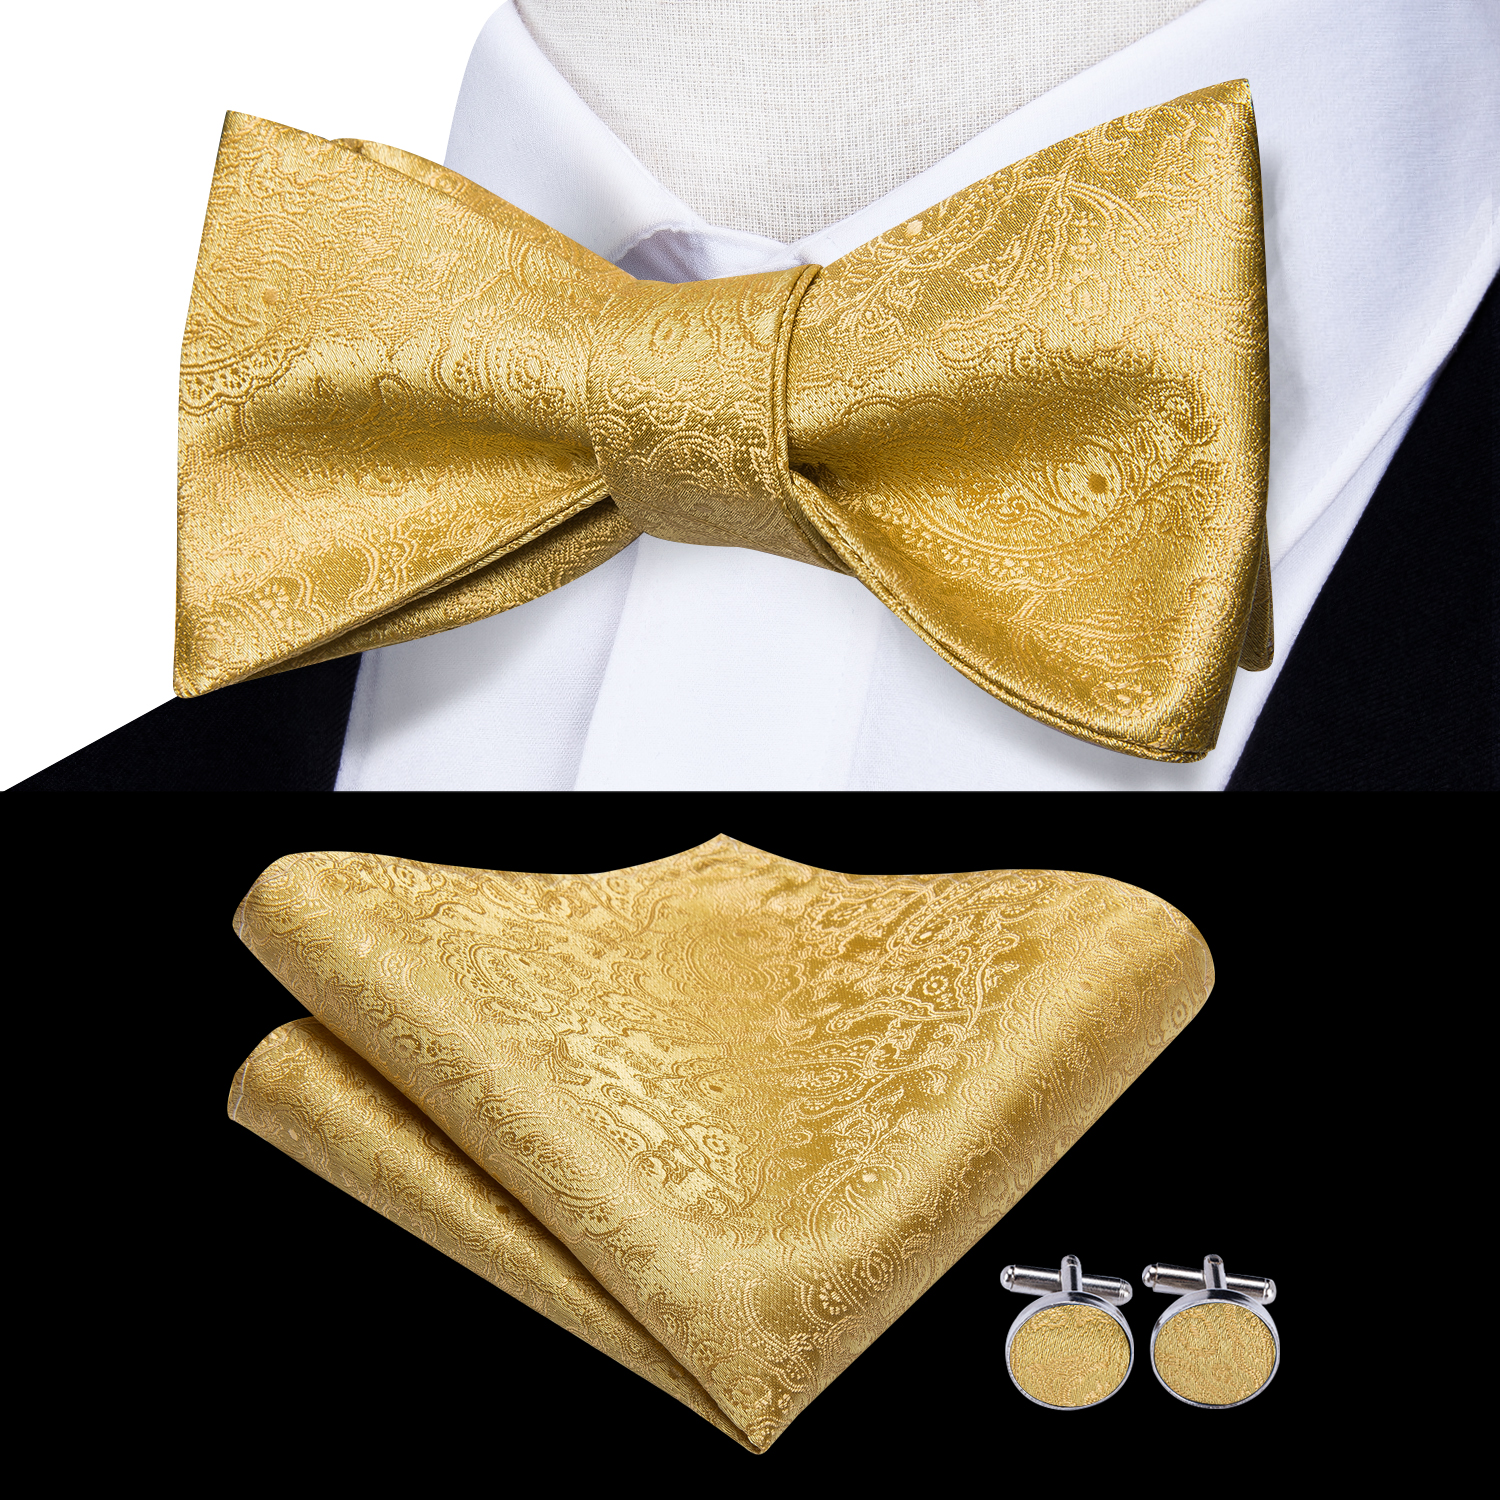 50 Styes Hi-Tie 100% Silk Bowtie For Men Bow Tie Pocket Square Cufflinks Set Butterfly Self Bow Ties Luxury Gold Borboleta Tie